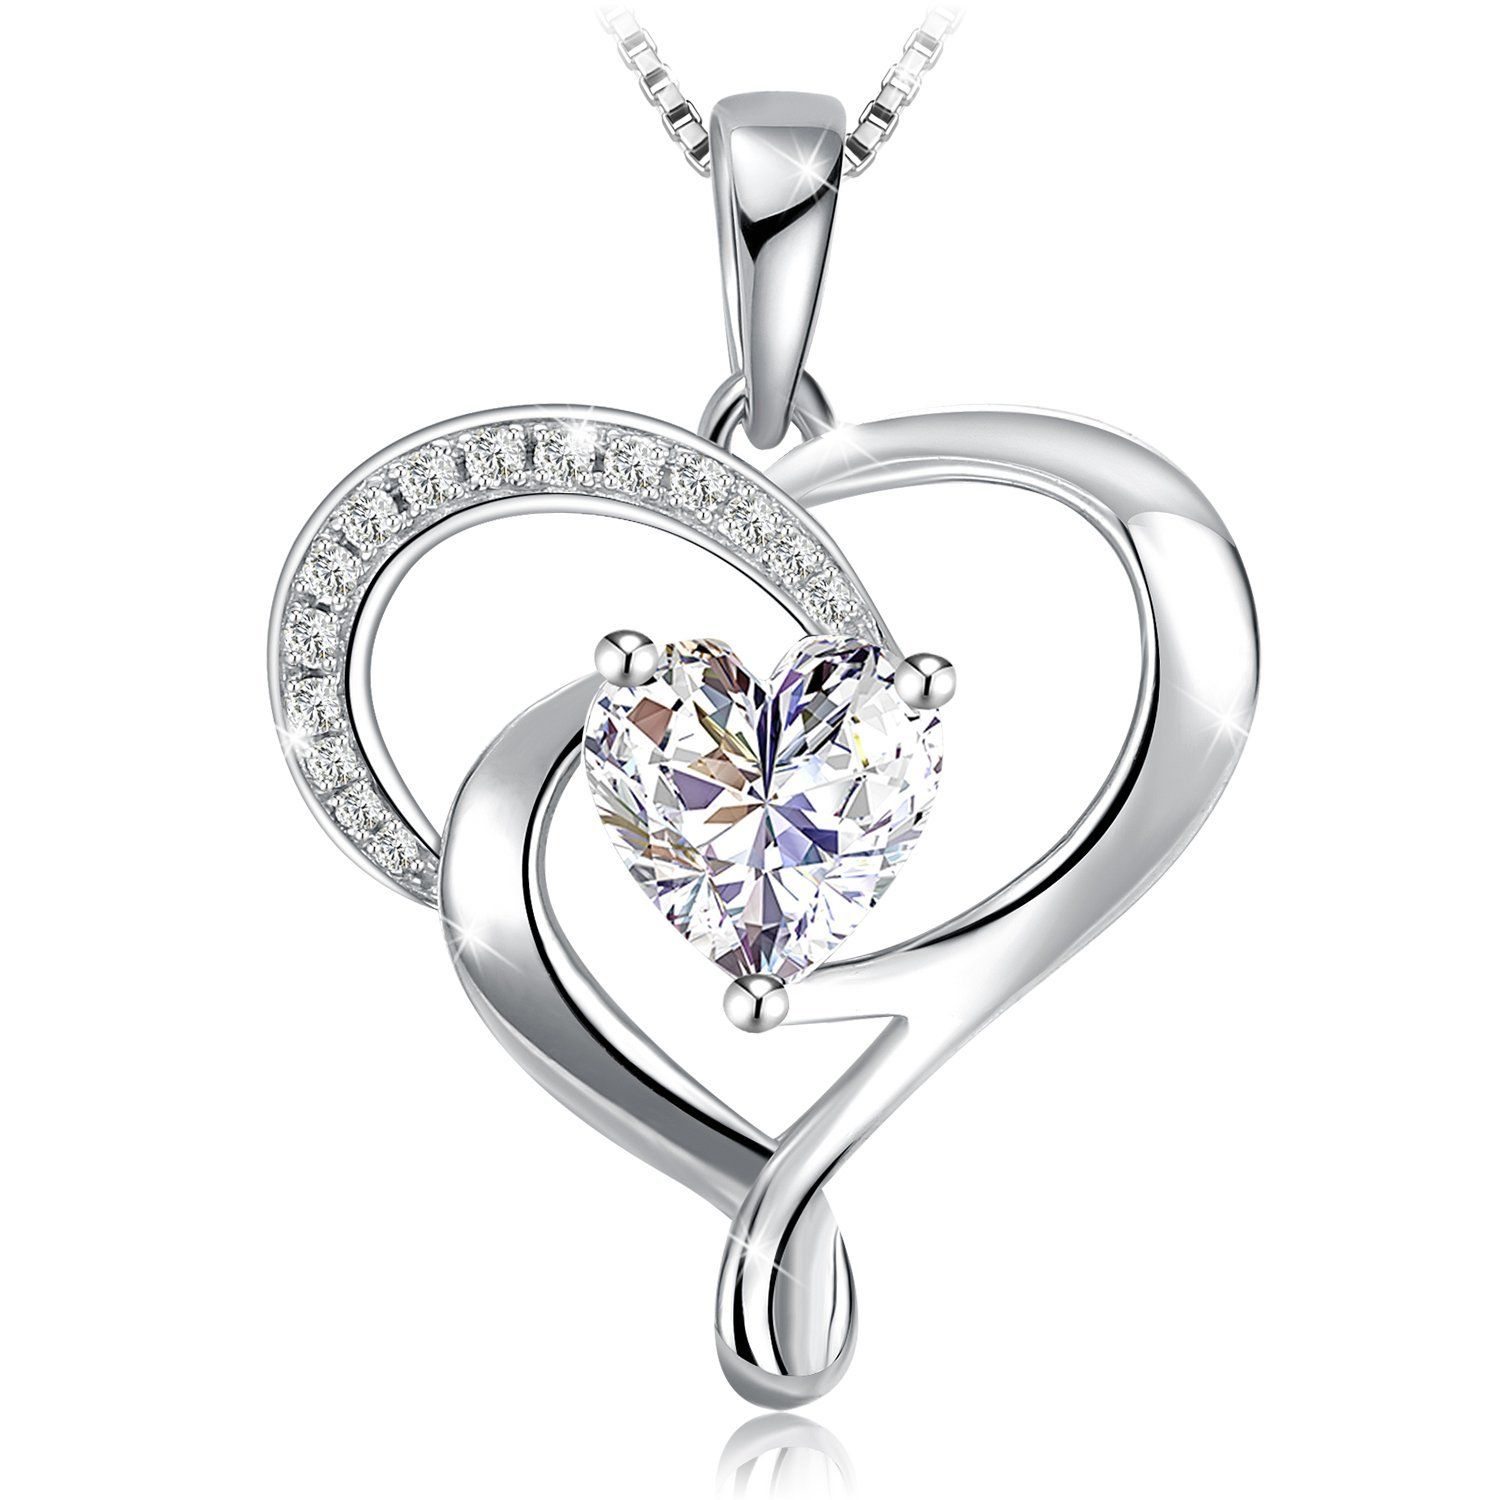 45CM DESIGNER HEART STERLING SILVER PLATED LADIES GIRLS SNAKE CHAIN NECKLACE